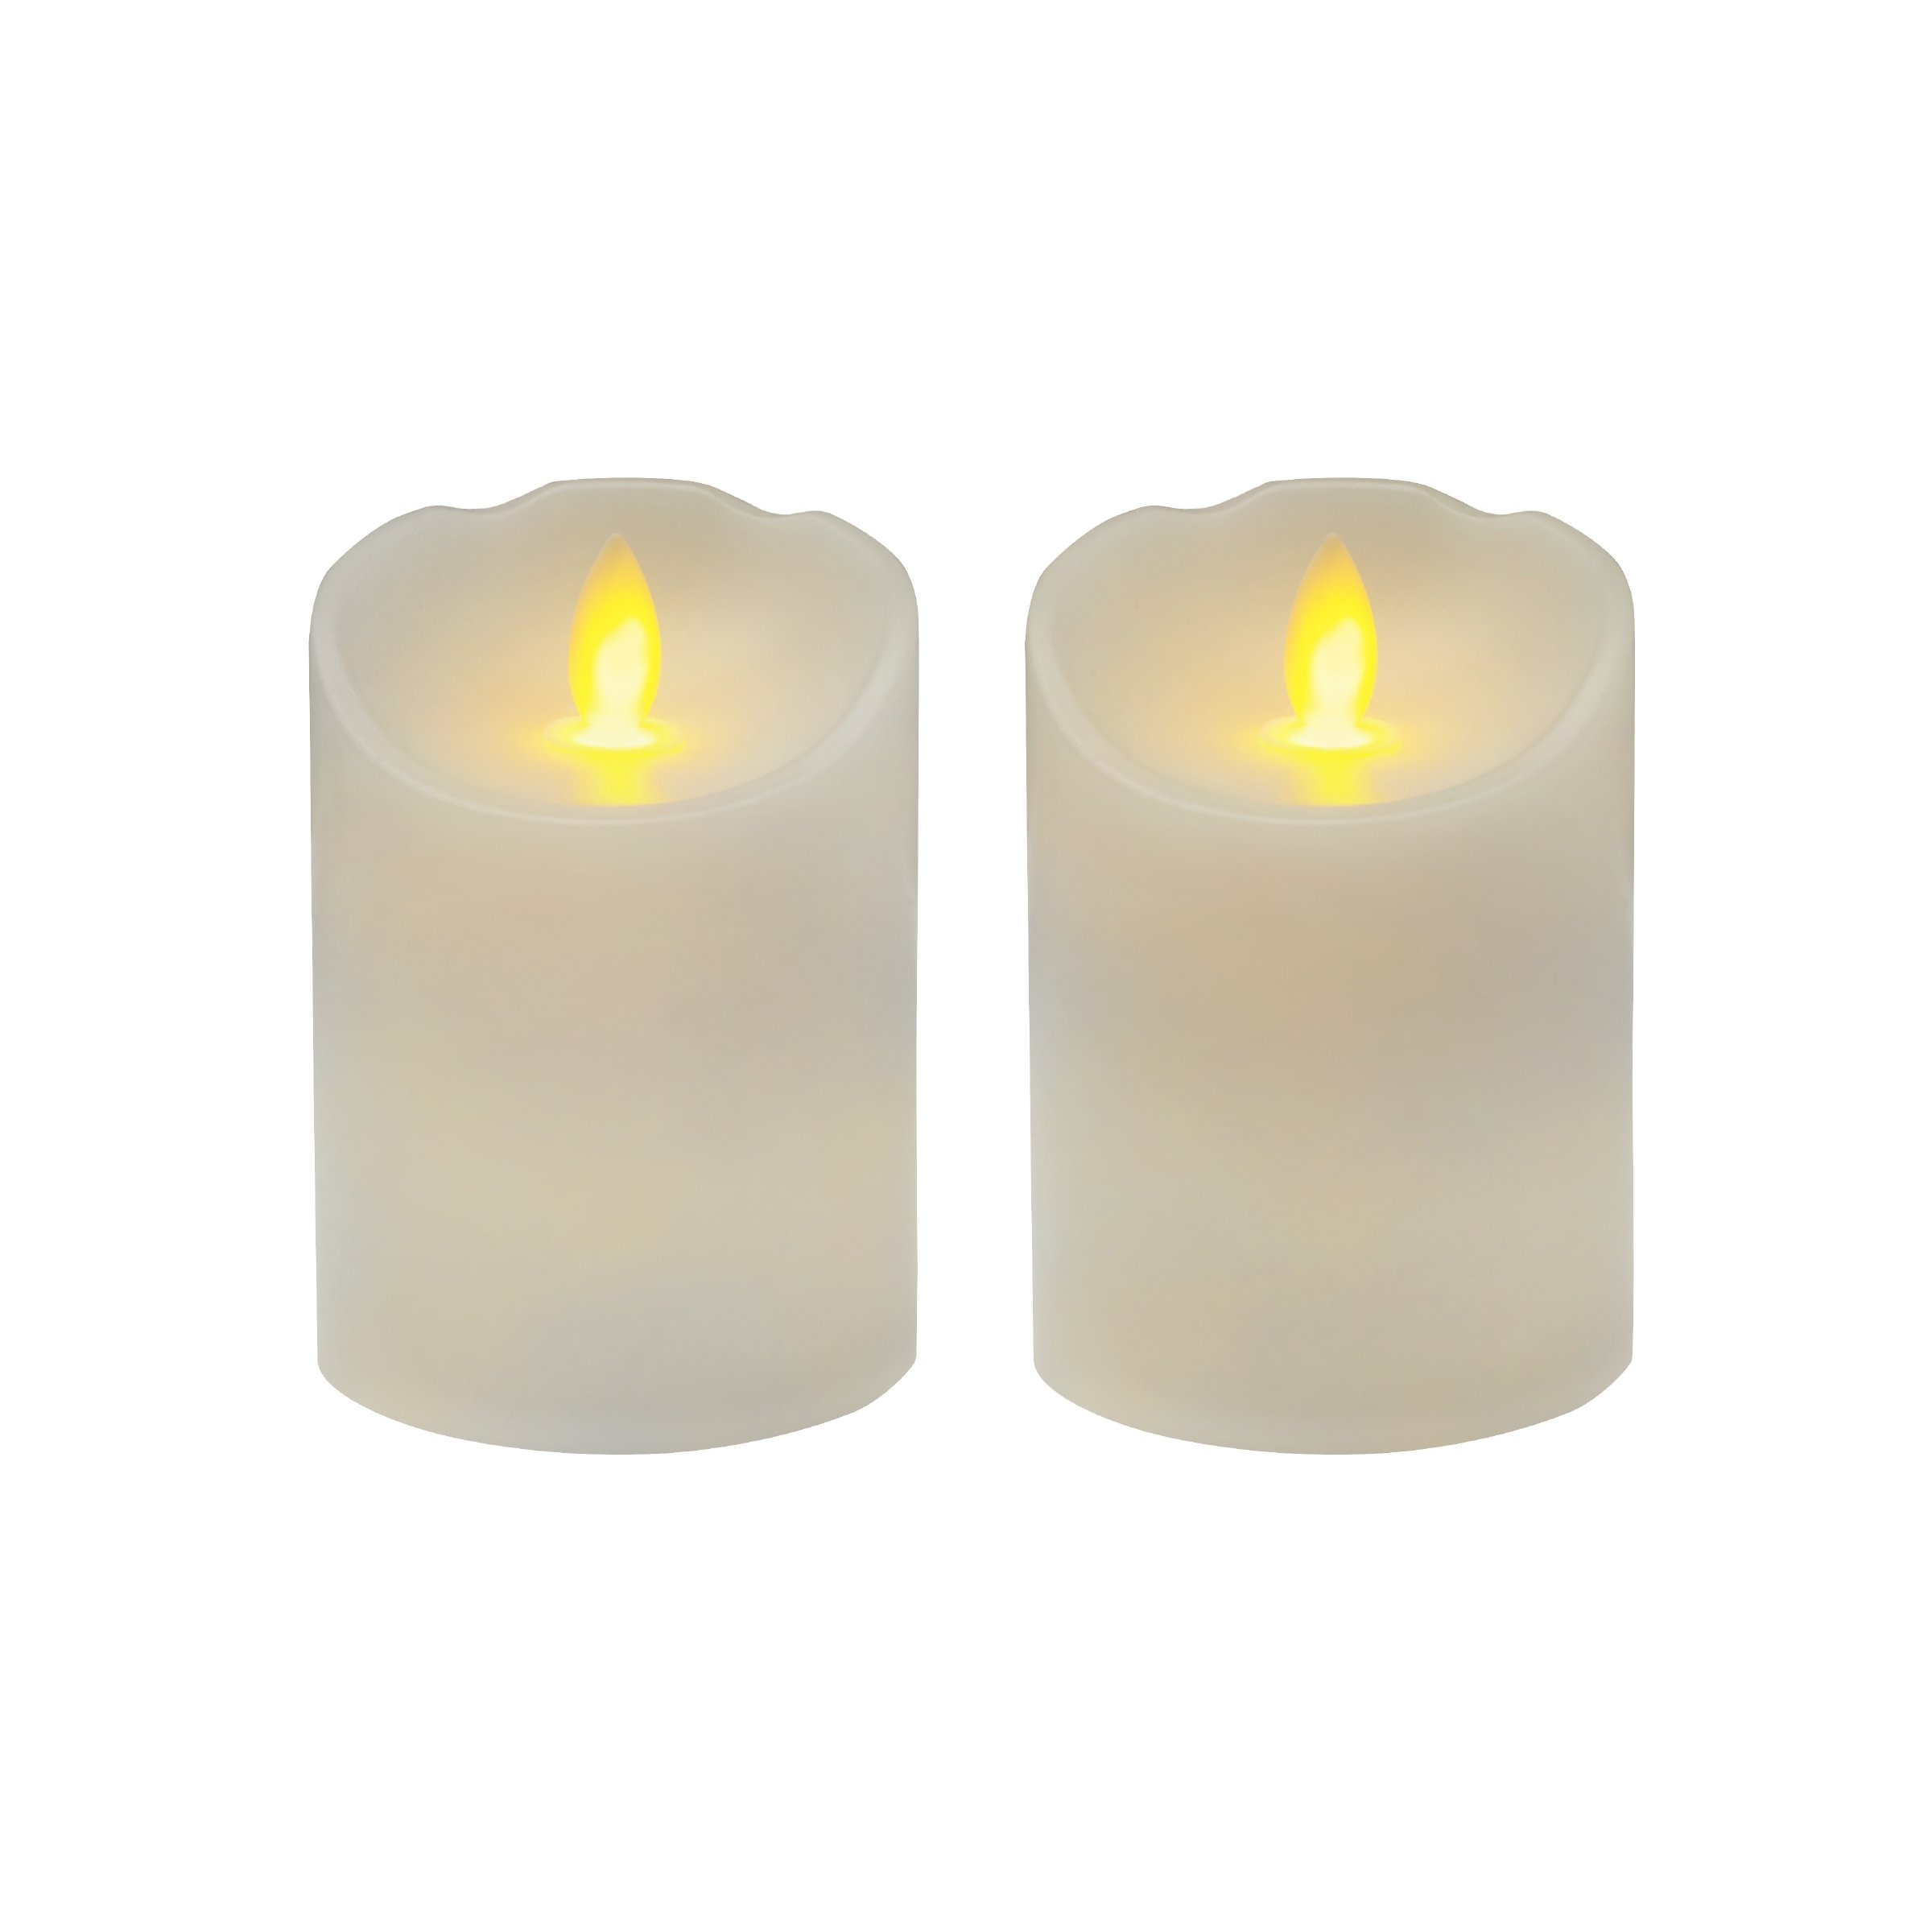 Mikasa Reflections LED Candle with Realistic Flame Set, 3-Inch-by-4-Inch, White, 2-Count